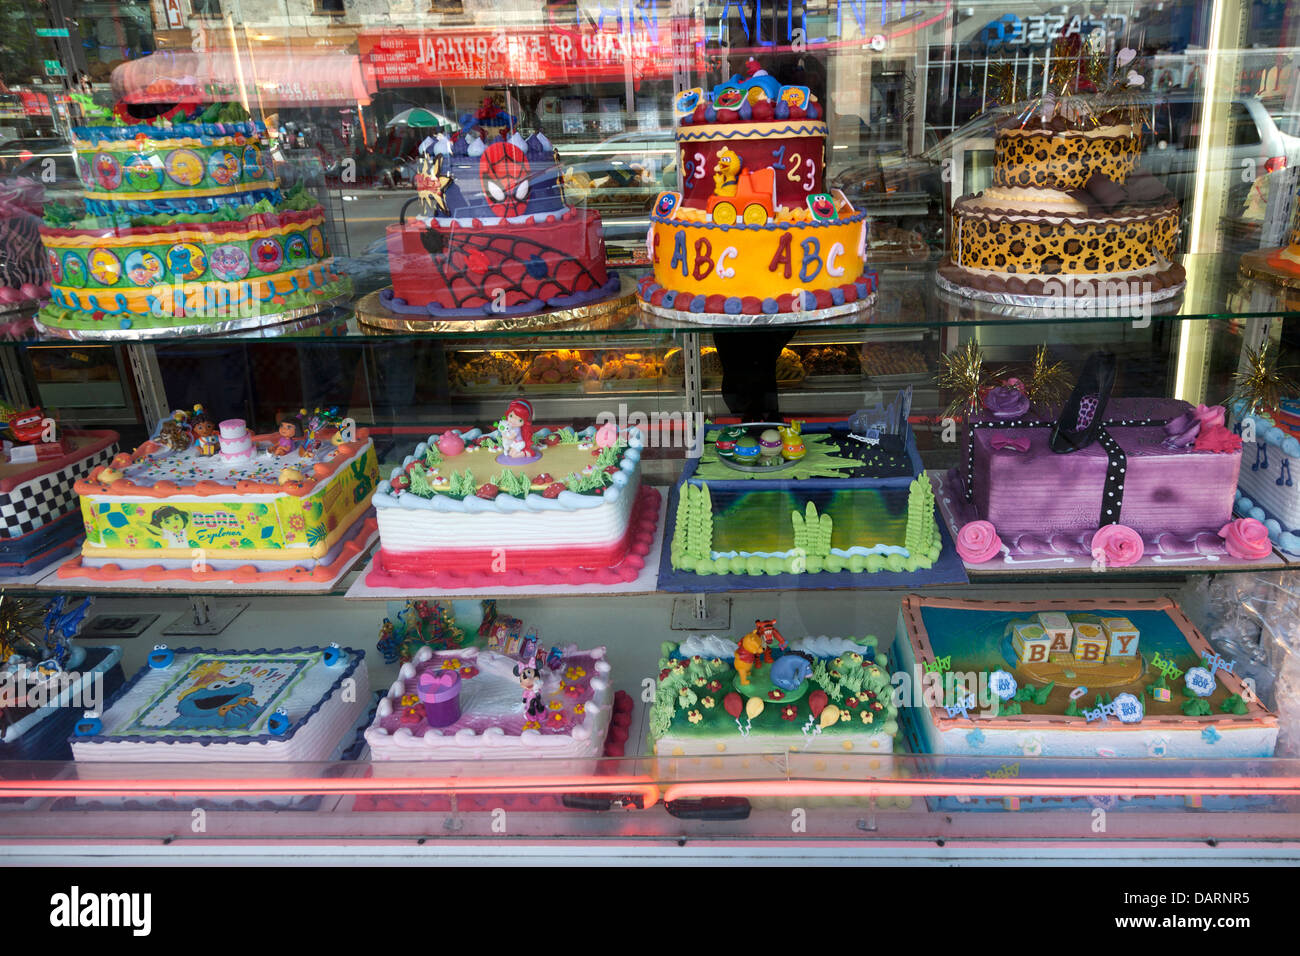 Birthday Cakes Ina Shop In New York City